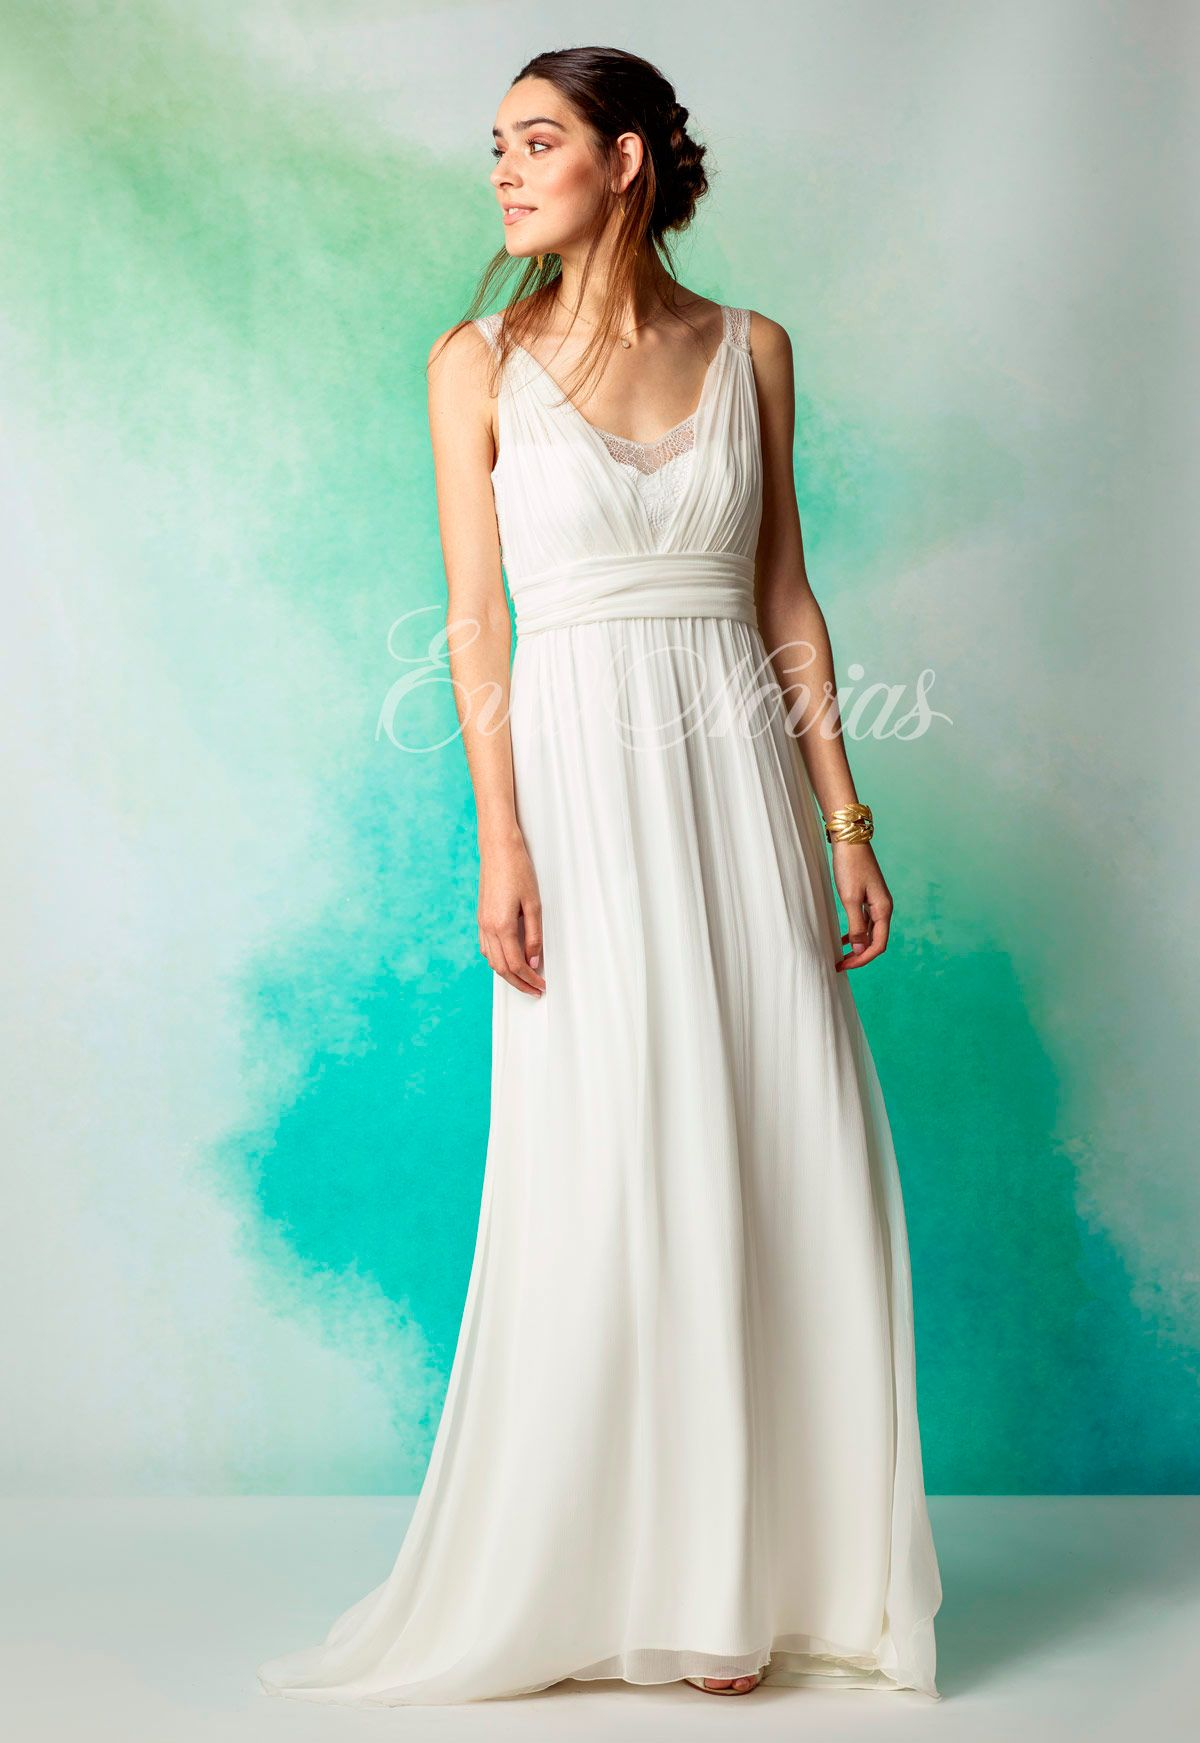 Lovely Factory Vestidos De Novia Photos - Wedding Ideas - memiocall.com